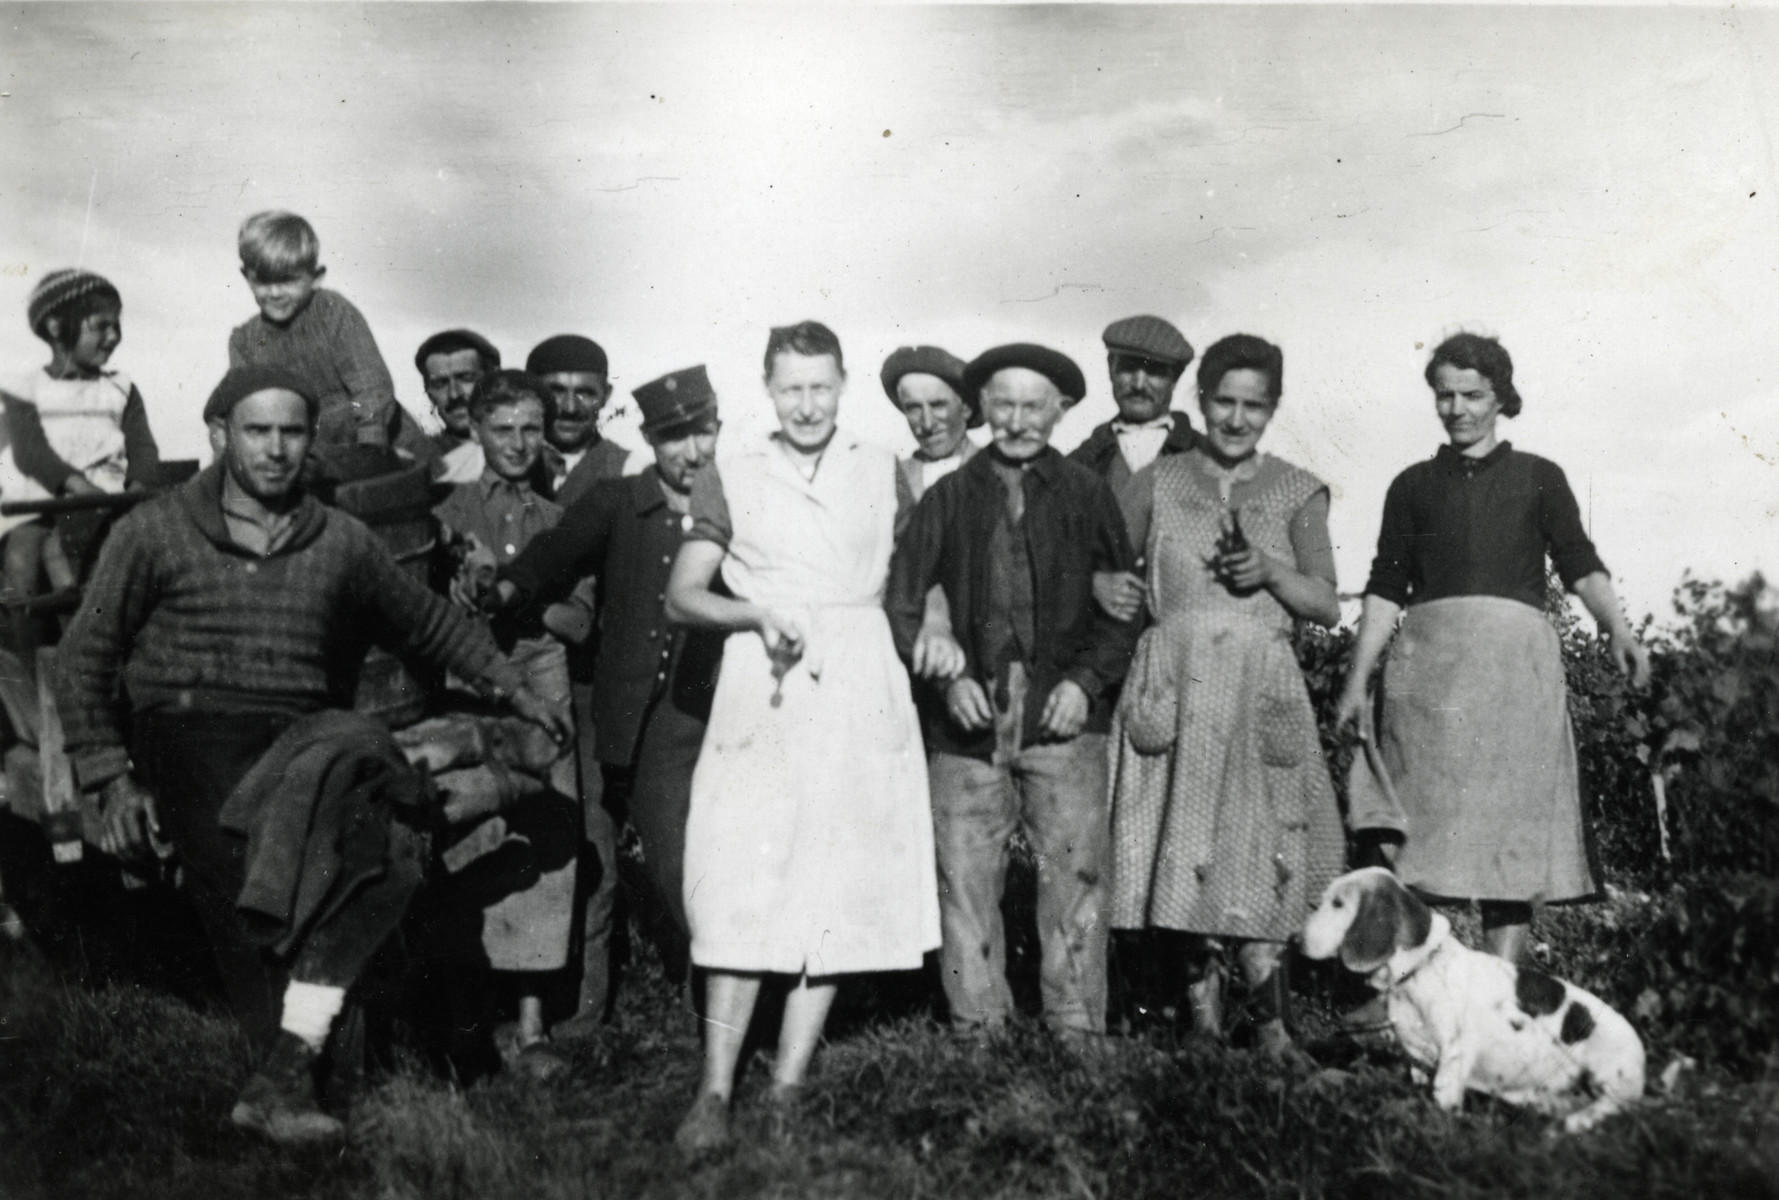 A group of thirteen people poses in front of a vineyard.   Pictured on the left is the donor, Beatrice Hoffer. In the center is her mother, Rosa Moses. Pictured in the back are Mr. Taffeler and Mr. Combes, the farmers who were hiring Beatrice's father, Alfred Kahn. Gerard Horst Meyerfeld, Beatrice's cousin, is standing in front of them.